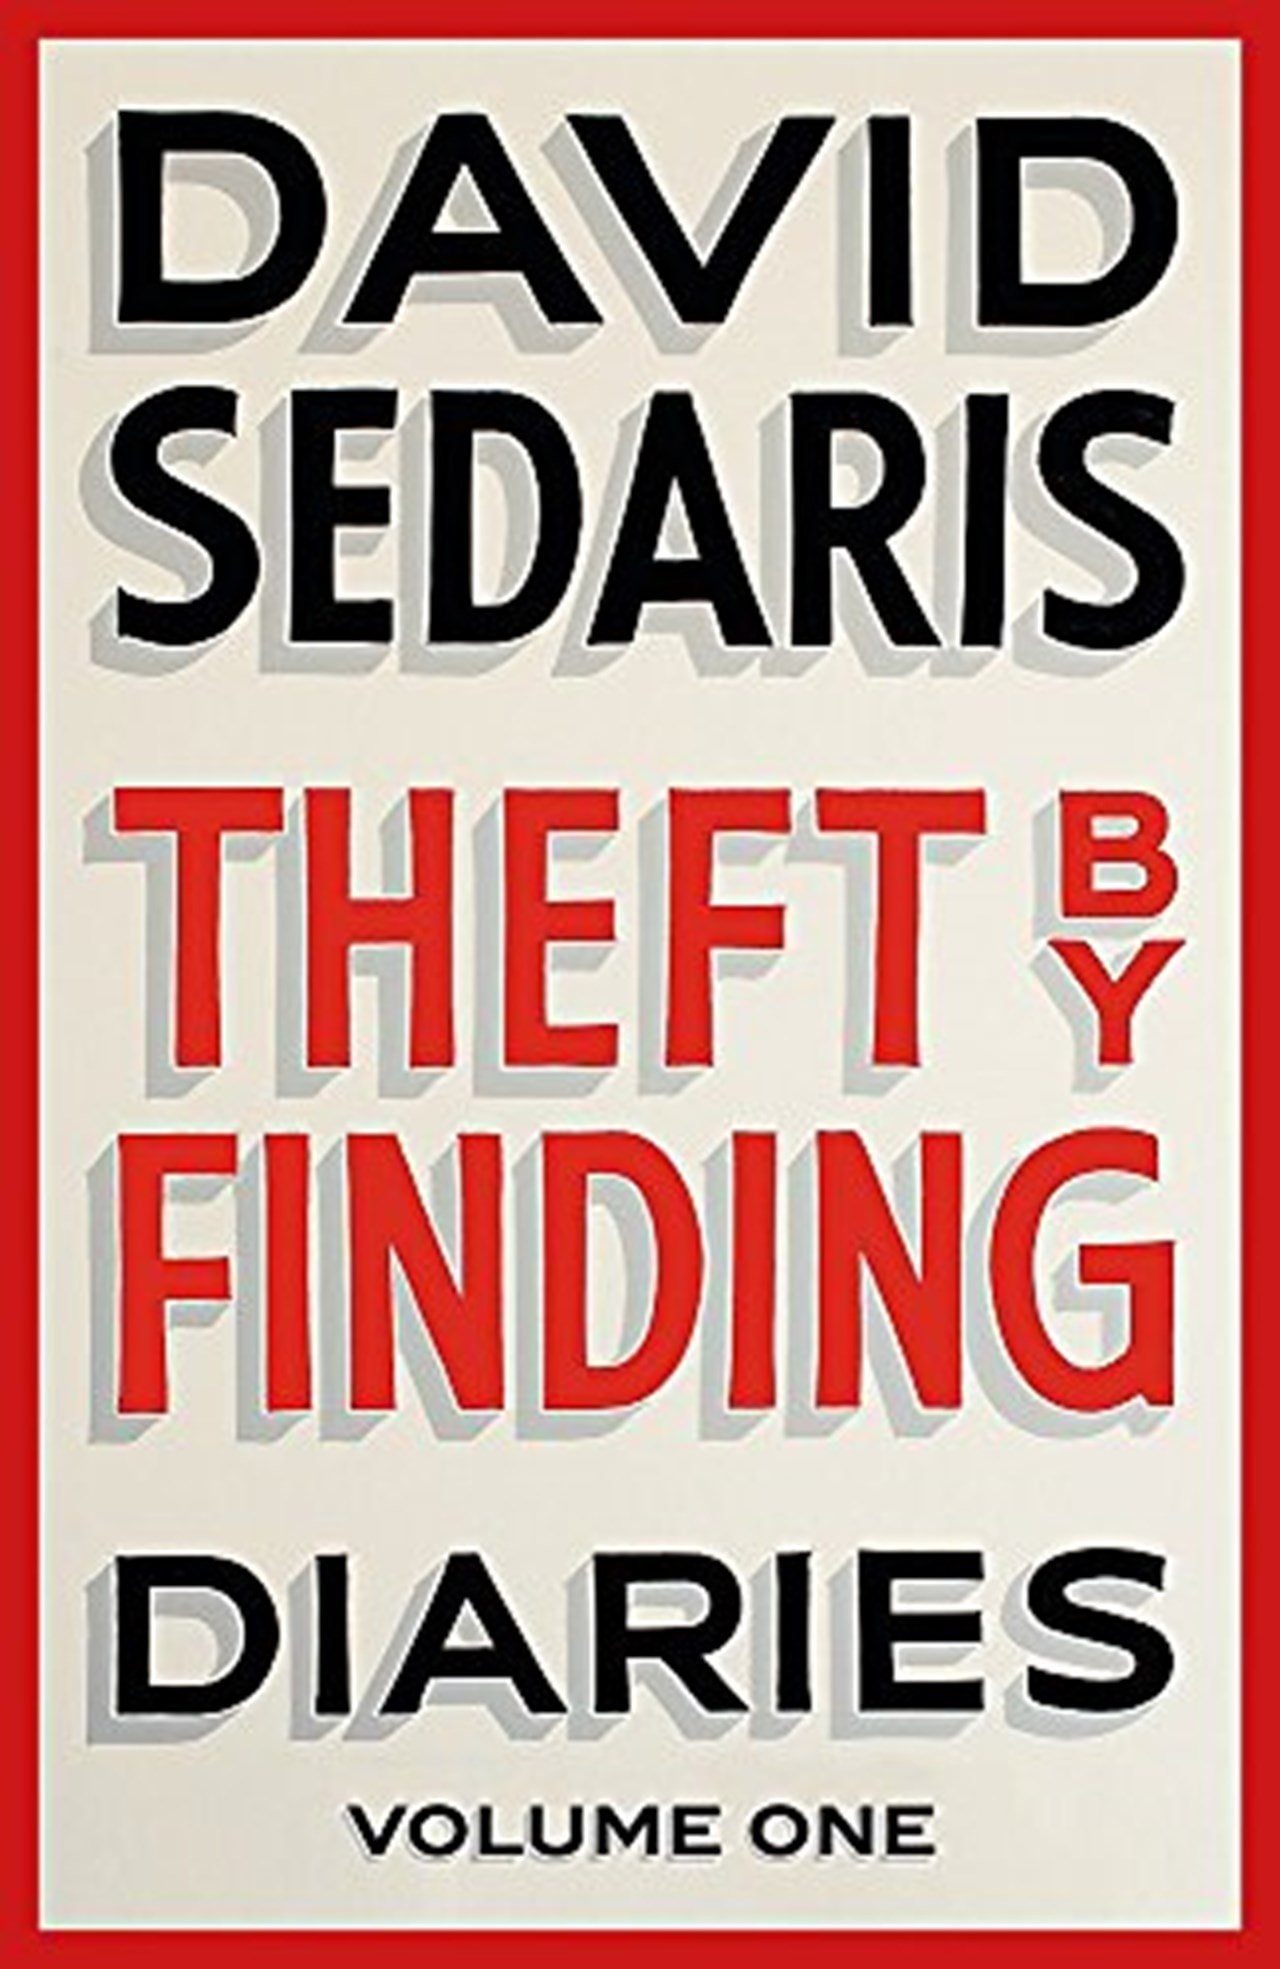 Theft By Finding Diaries - 1